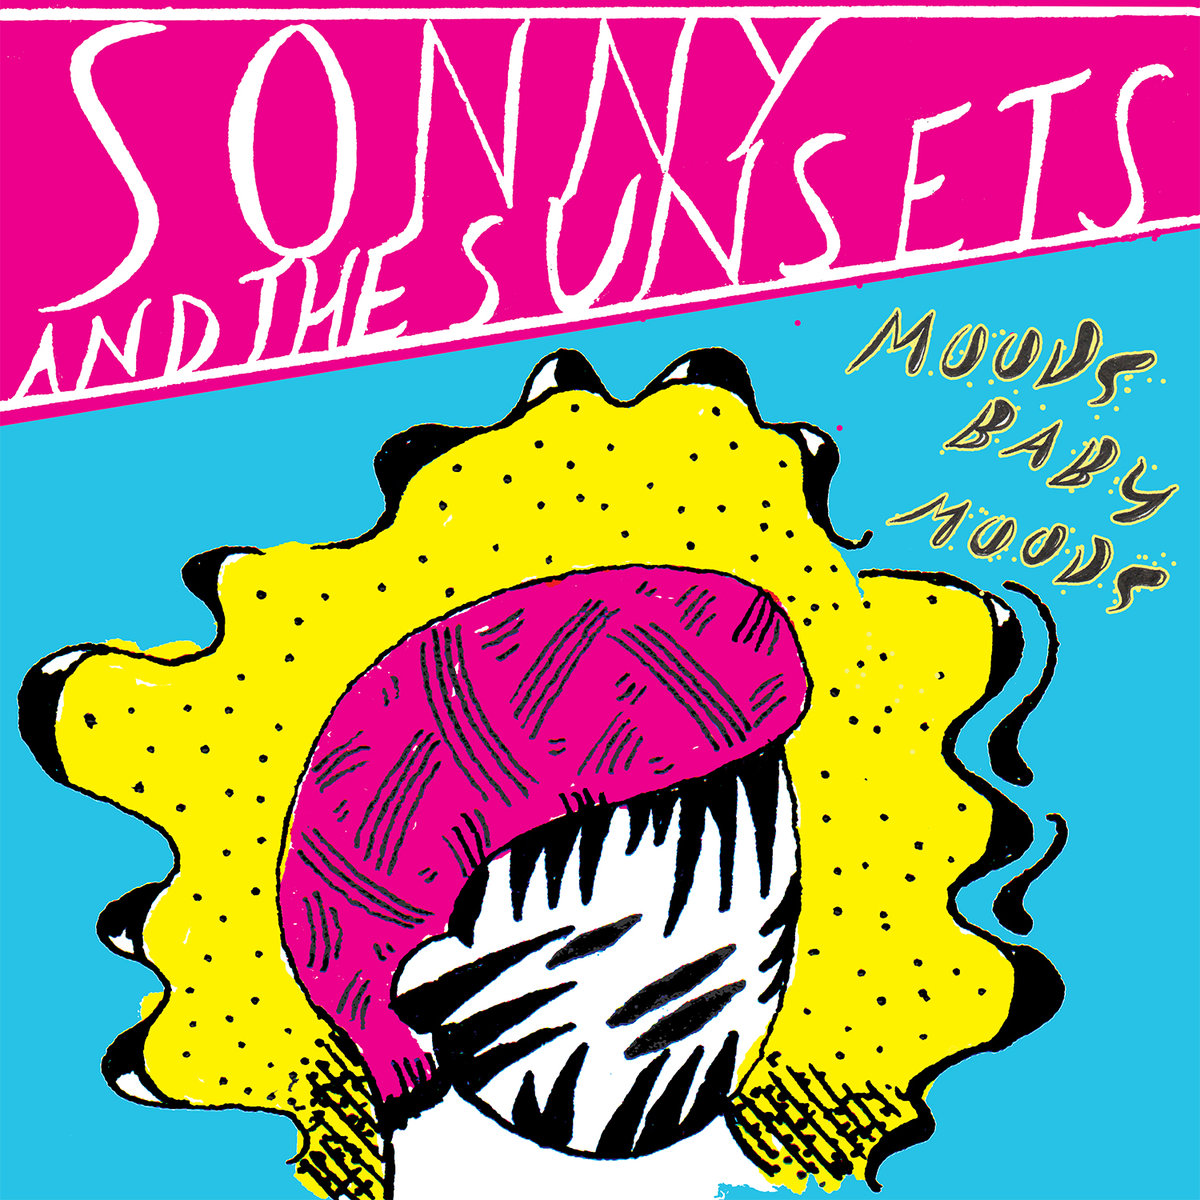 'Moods Baby Moods' by Sonny & The Sunsets, album review by Matthew Wardell.